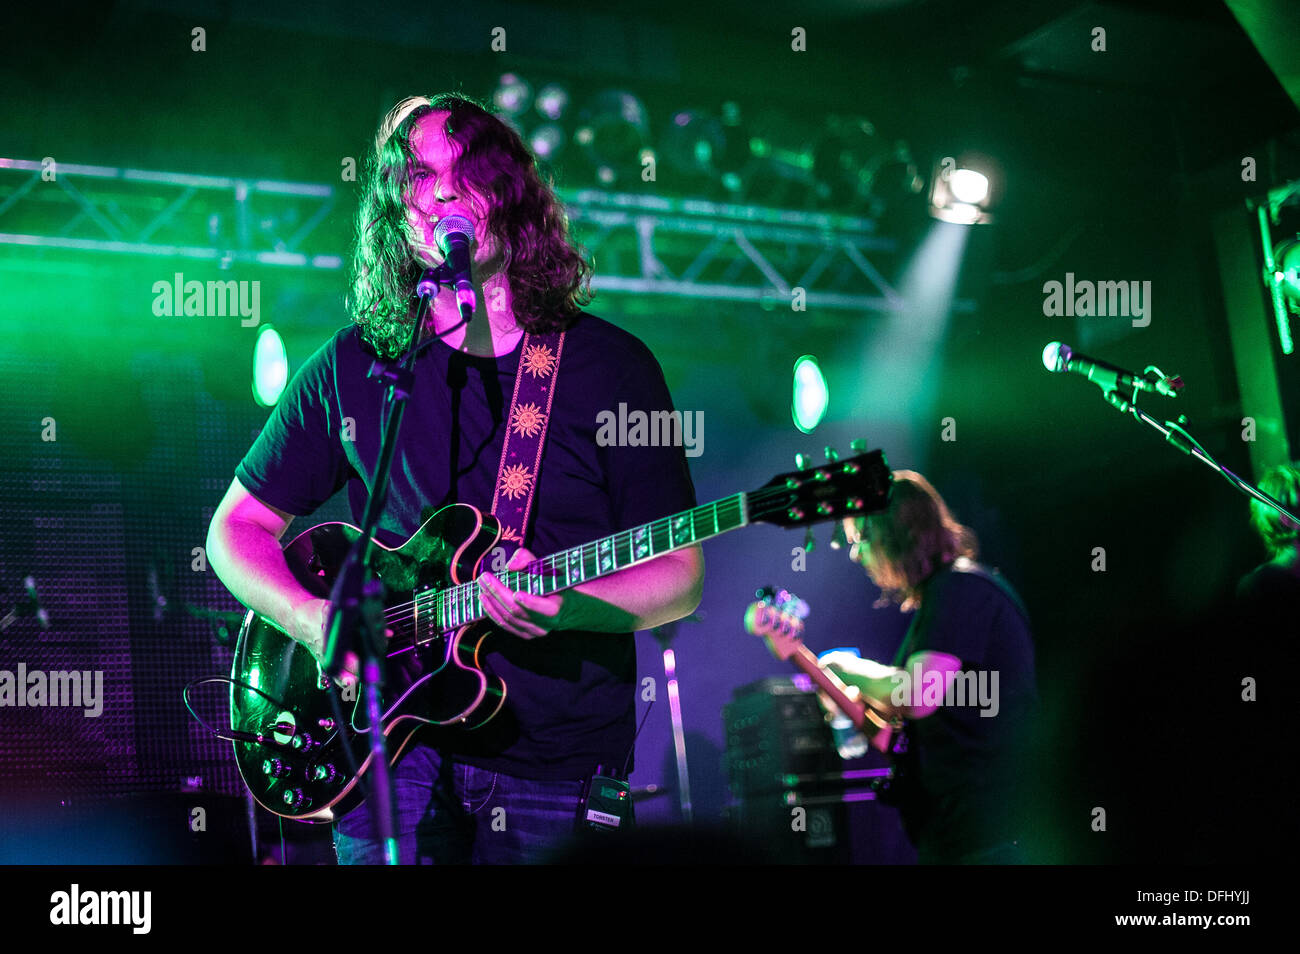 Rome, Italy. 04th Oct, 2013. Torsten Kinsella , voice and guitar by God Is an Astronaut, Ciampino (Rome), Italy Orion Club, 4-10-2013 © Roberto Nistri/Alamy - Stock Image